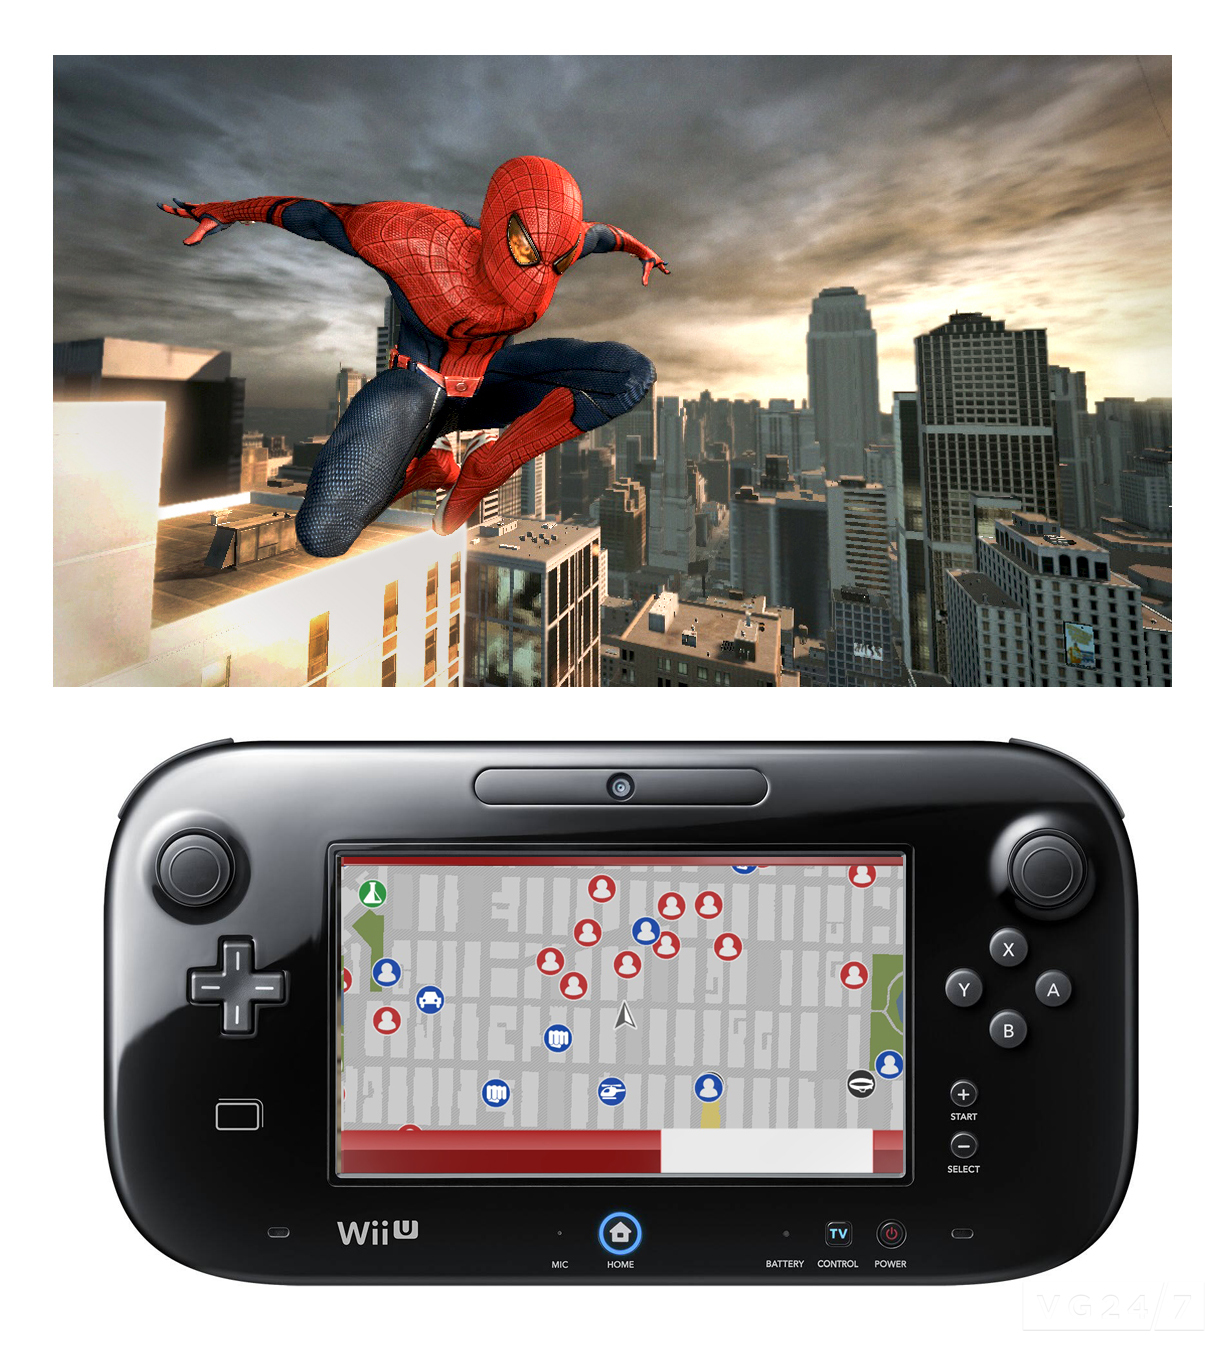 Amazing Spider Man Ultimate Edition Dated For Wii U Vg247